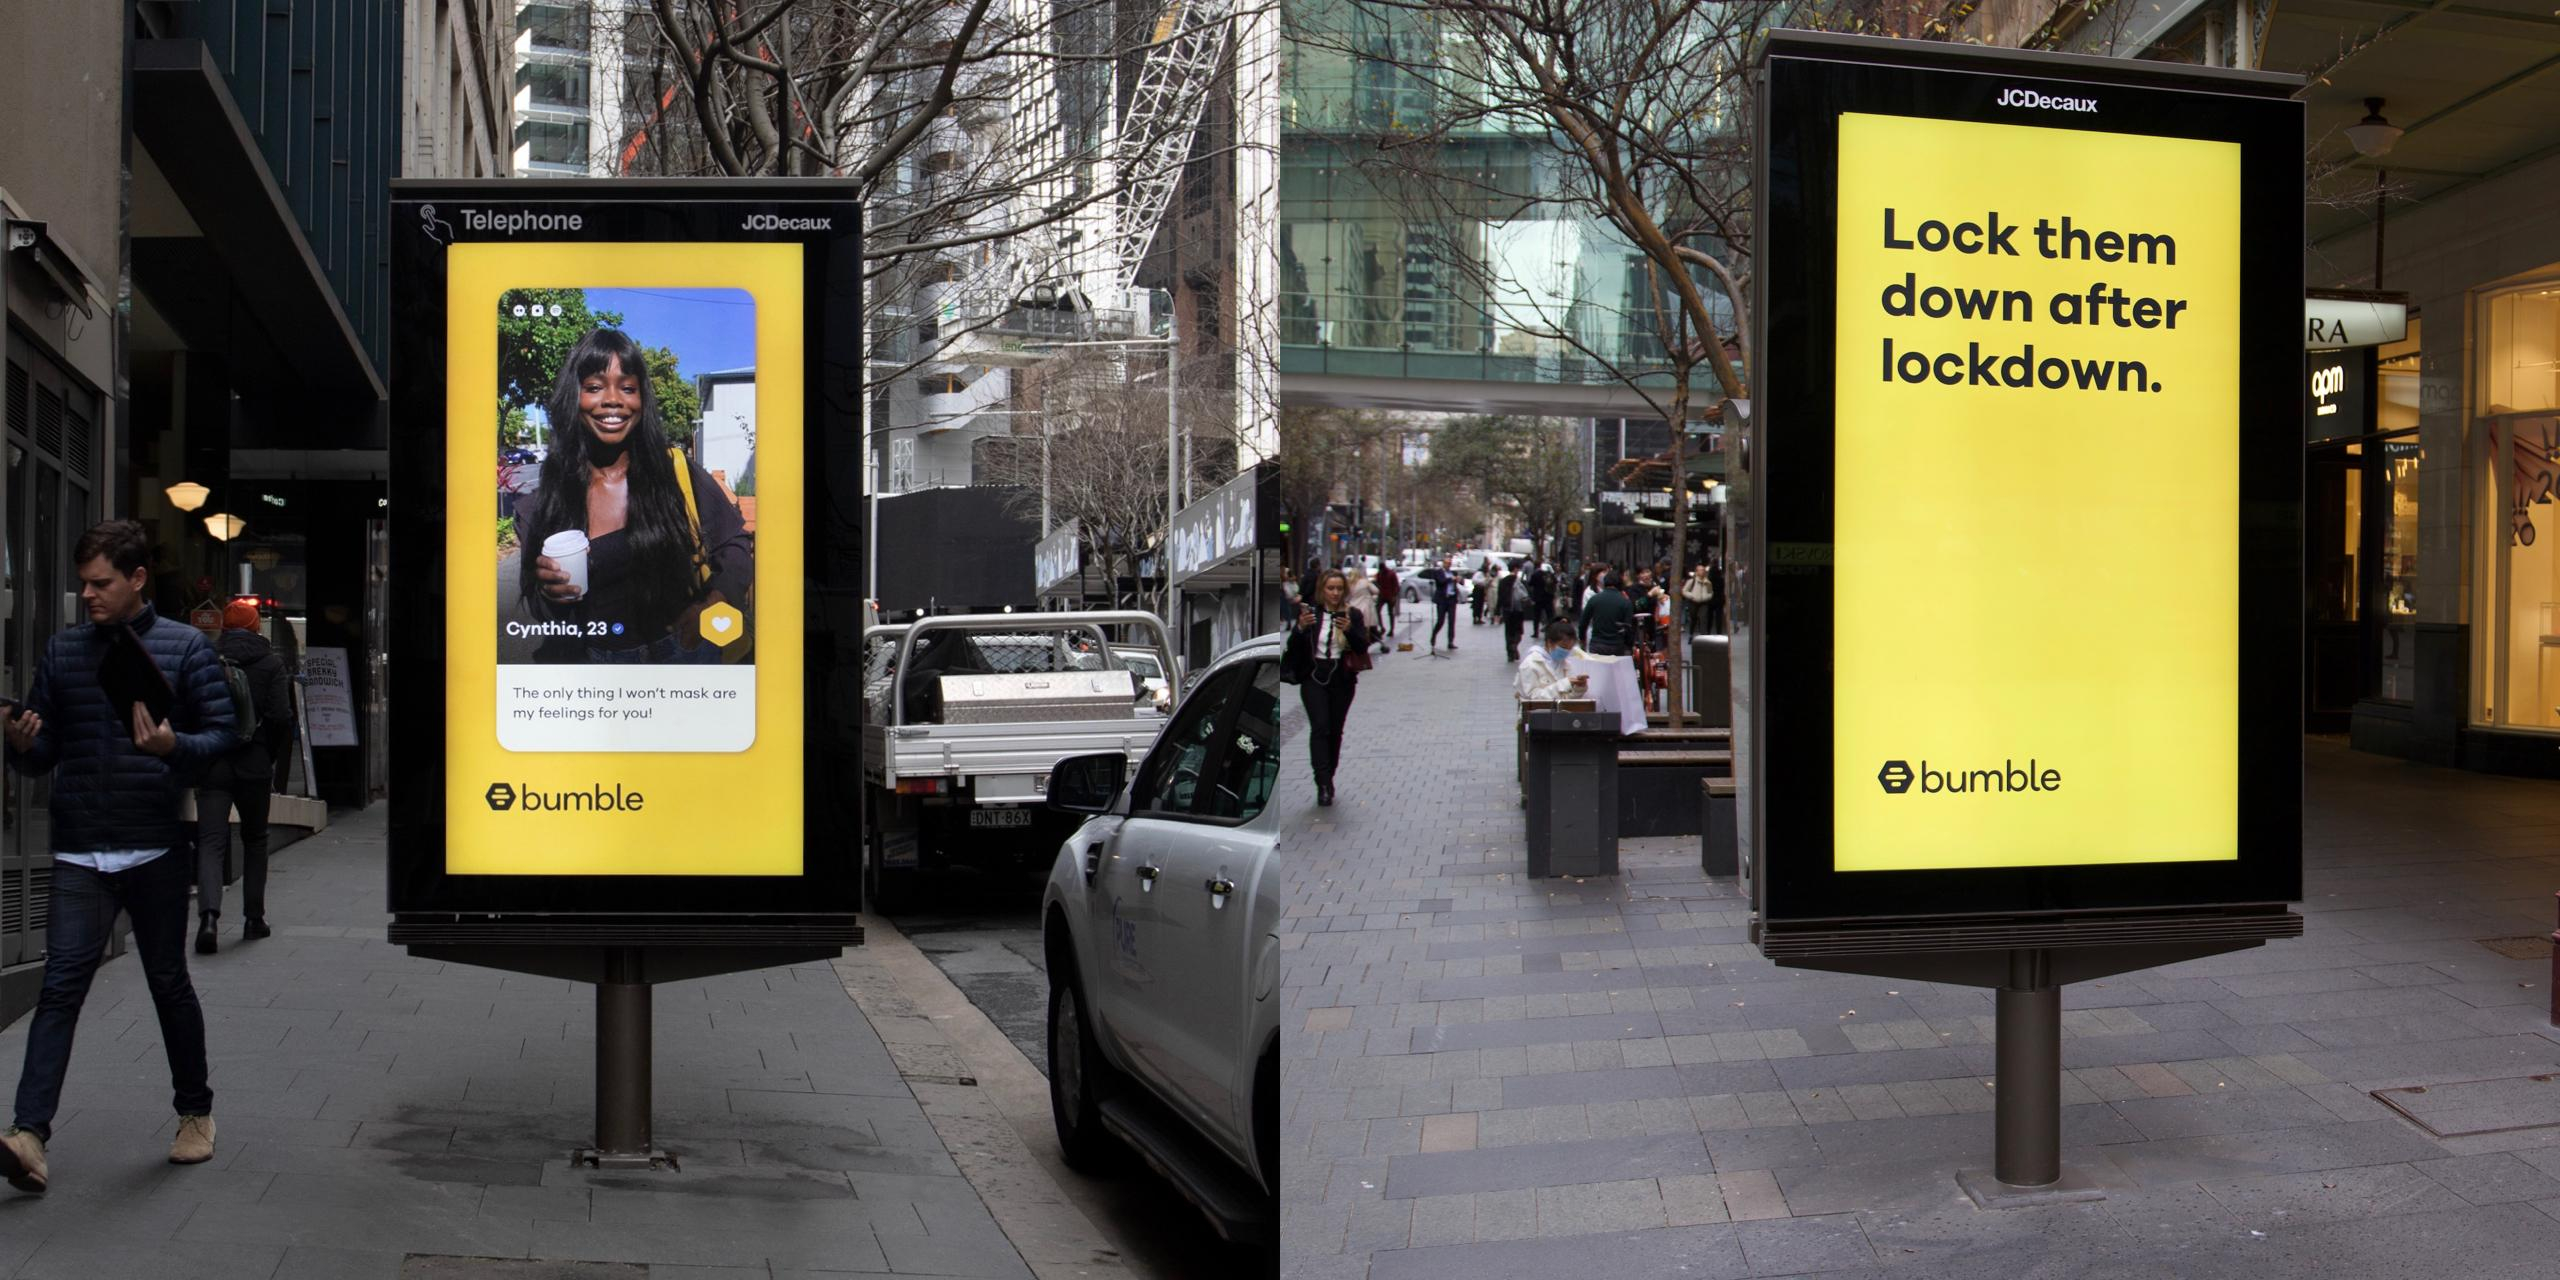 Bumble Launches Out Of Home Campaign in Sydney